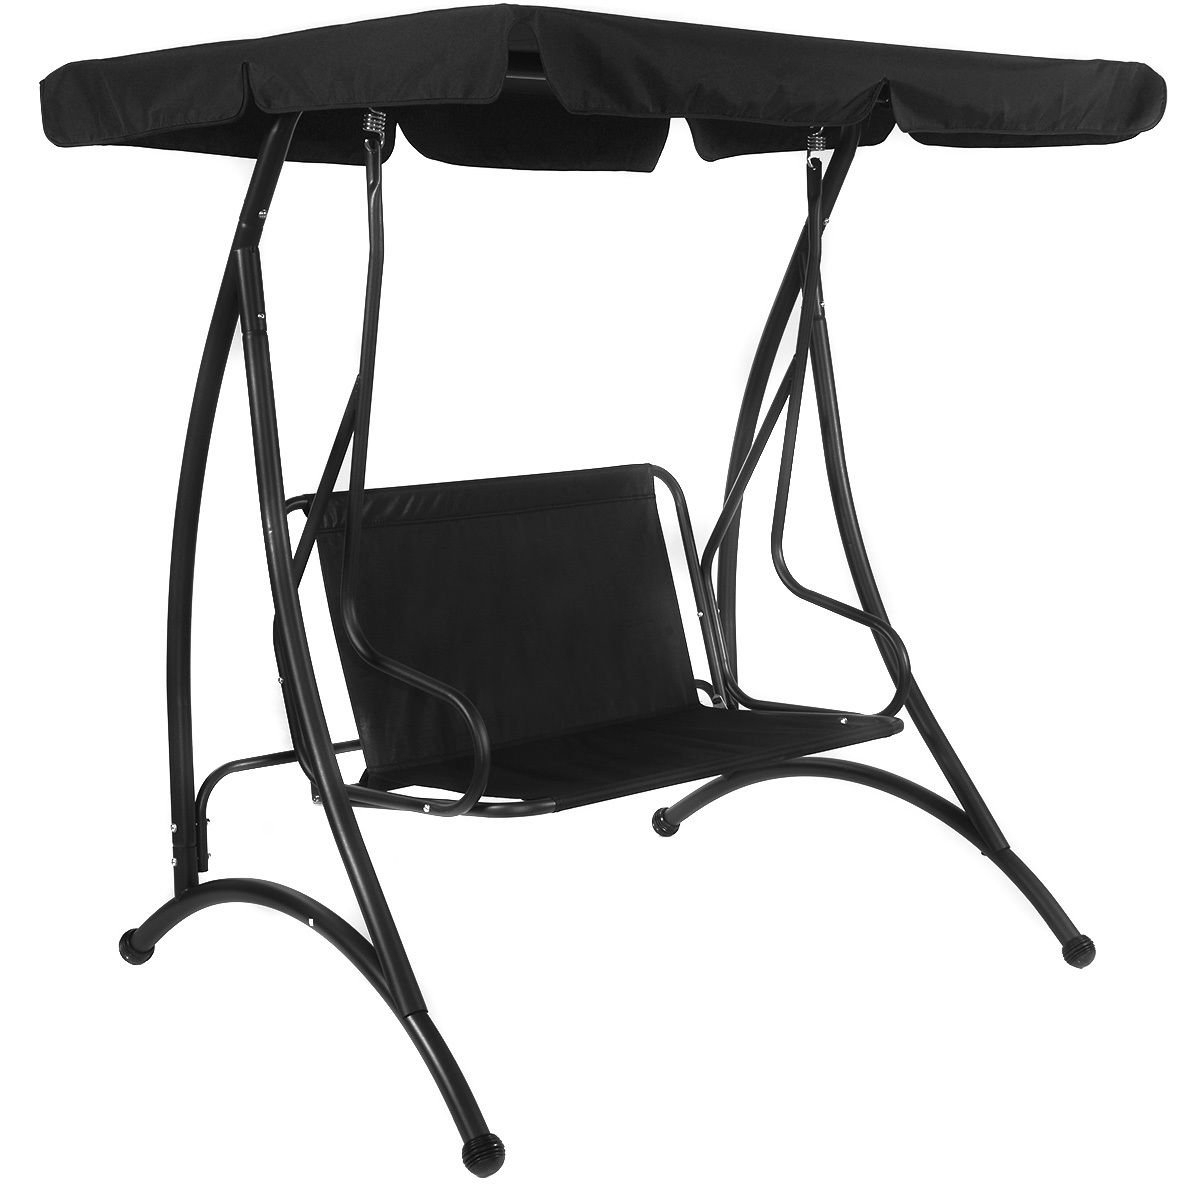 Popular 2 Person Adjustable Tilt Canopy Patio Loveseat Porch Swings Intended For Amazon : Black Patio Loveseat Swing Canopy Comfortable W (View 22 of 30)